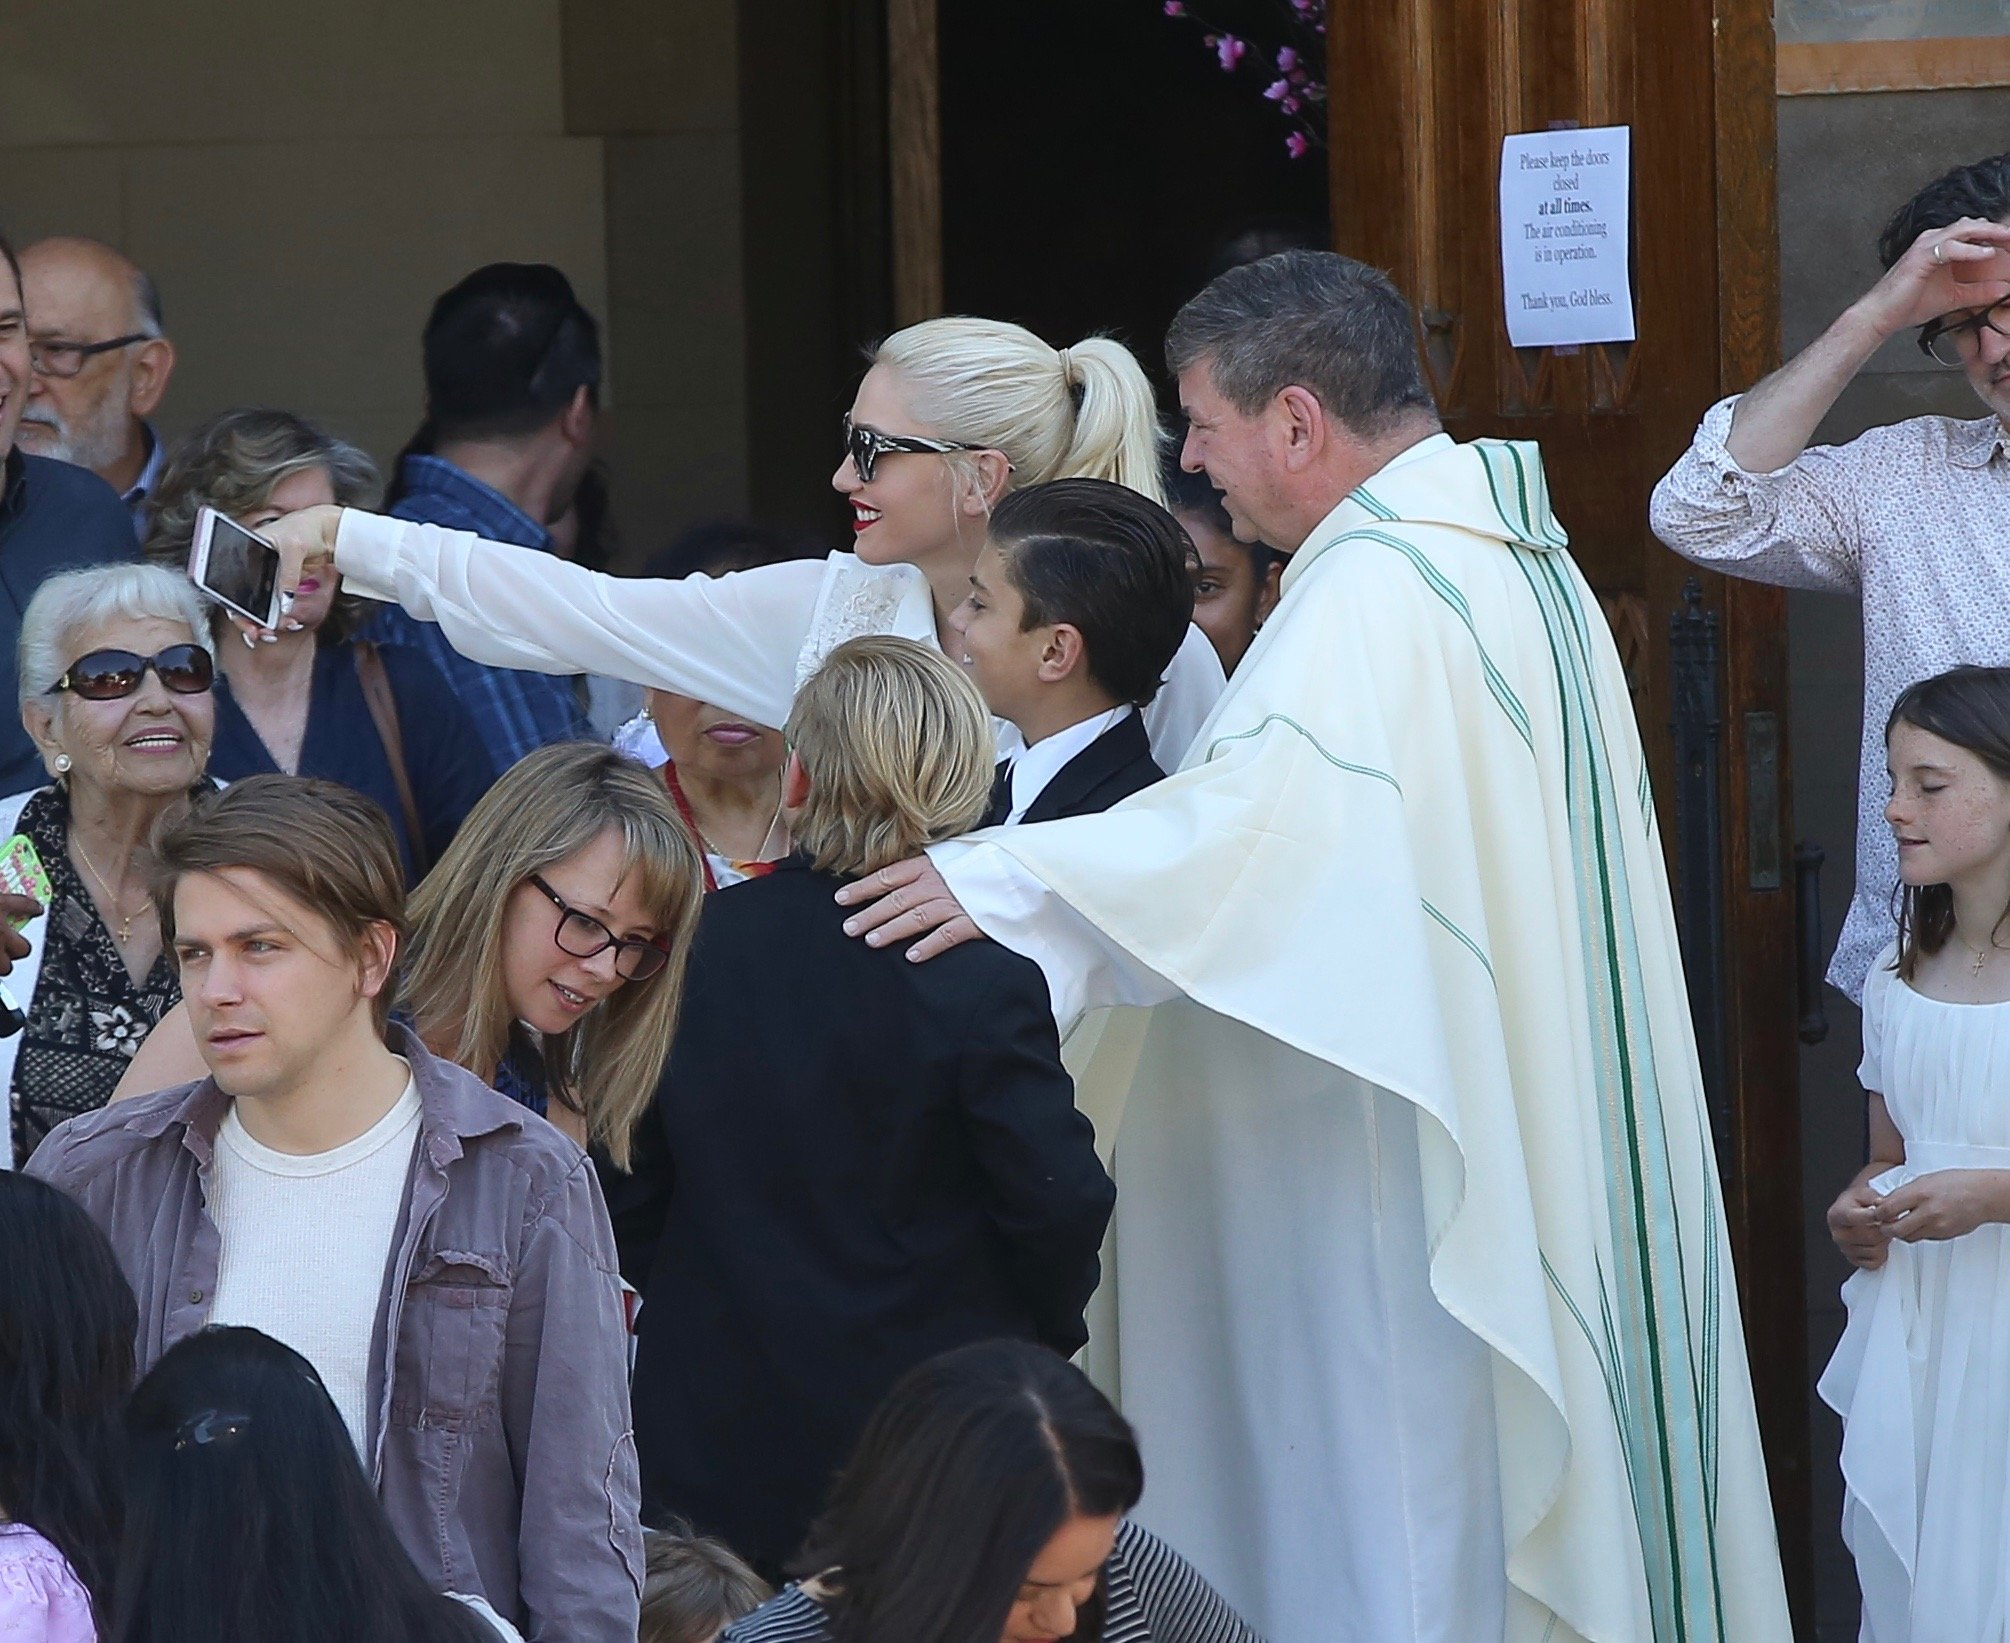 , Los Angeles, CA - 4/30/2017 -  Gwen Stefani attends church on Sunday. On Saturday, her son, kingston Rossdale, made his first communion. We can notice he received a necklace representing it. Gwen really likes the Priest! She took several photos with him.  After that, Gwen and Kingston went to Ralph's supermarket to buy some groceries.   -PICTURED: Gwen Stefani, Kingston Rossdale -, Image: 330727775, License: Rights-managed, Restrictions: , Model Release: no, Credit line: Profimedia, INSTAR Images